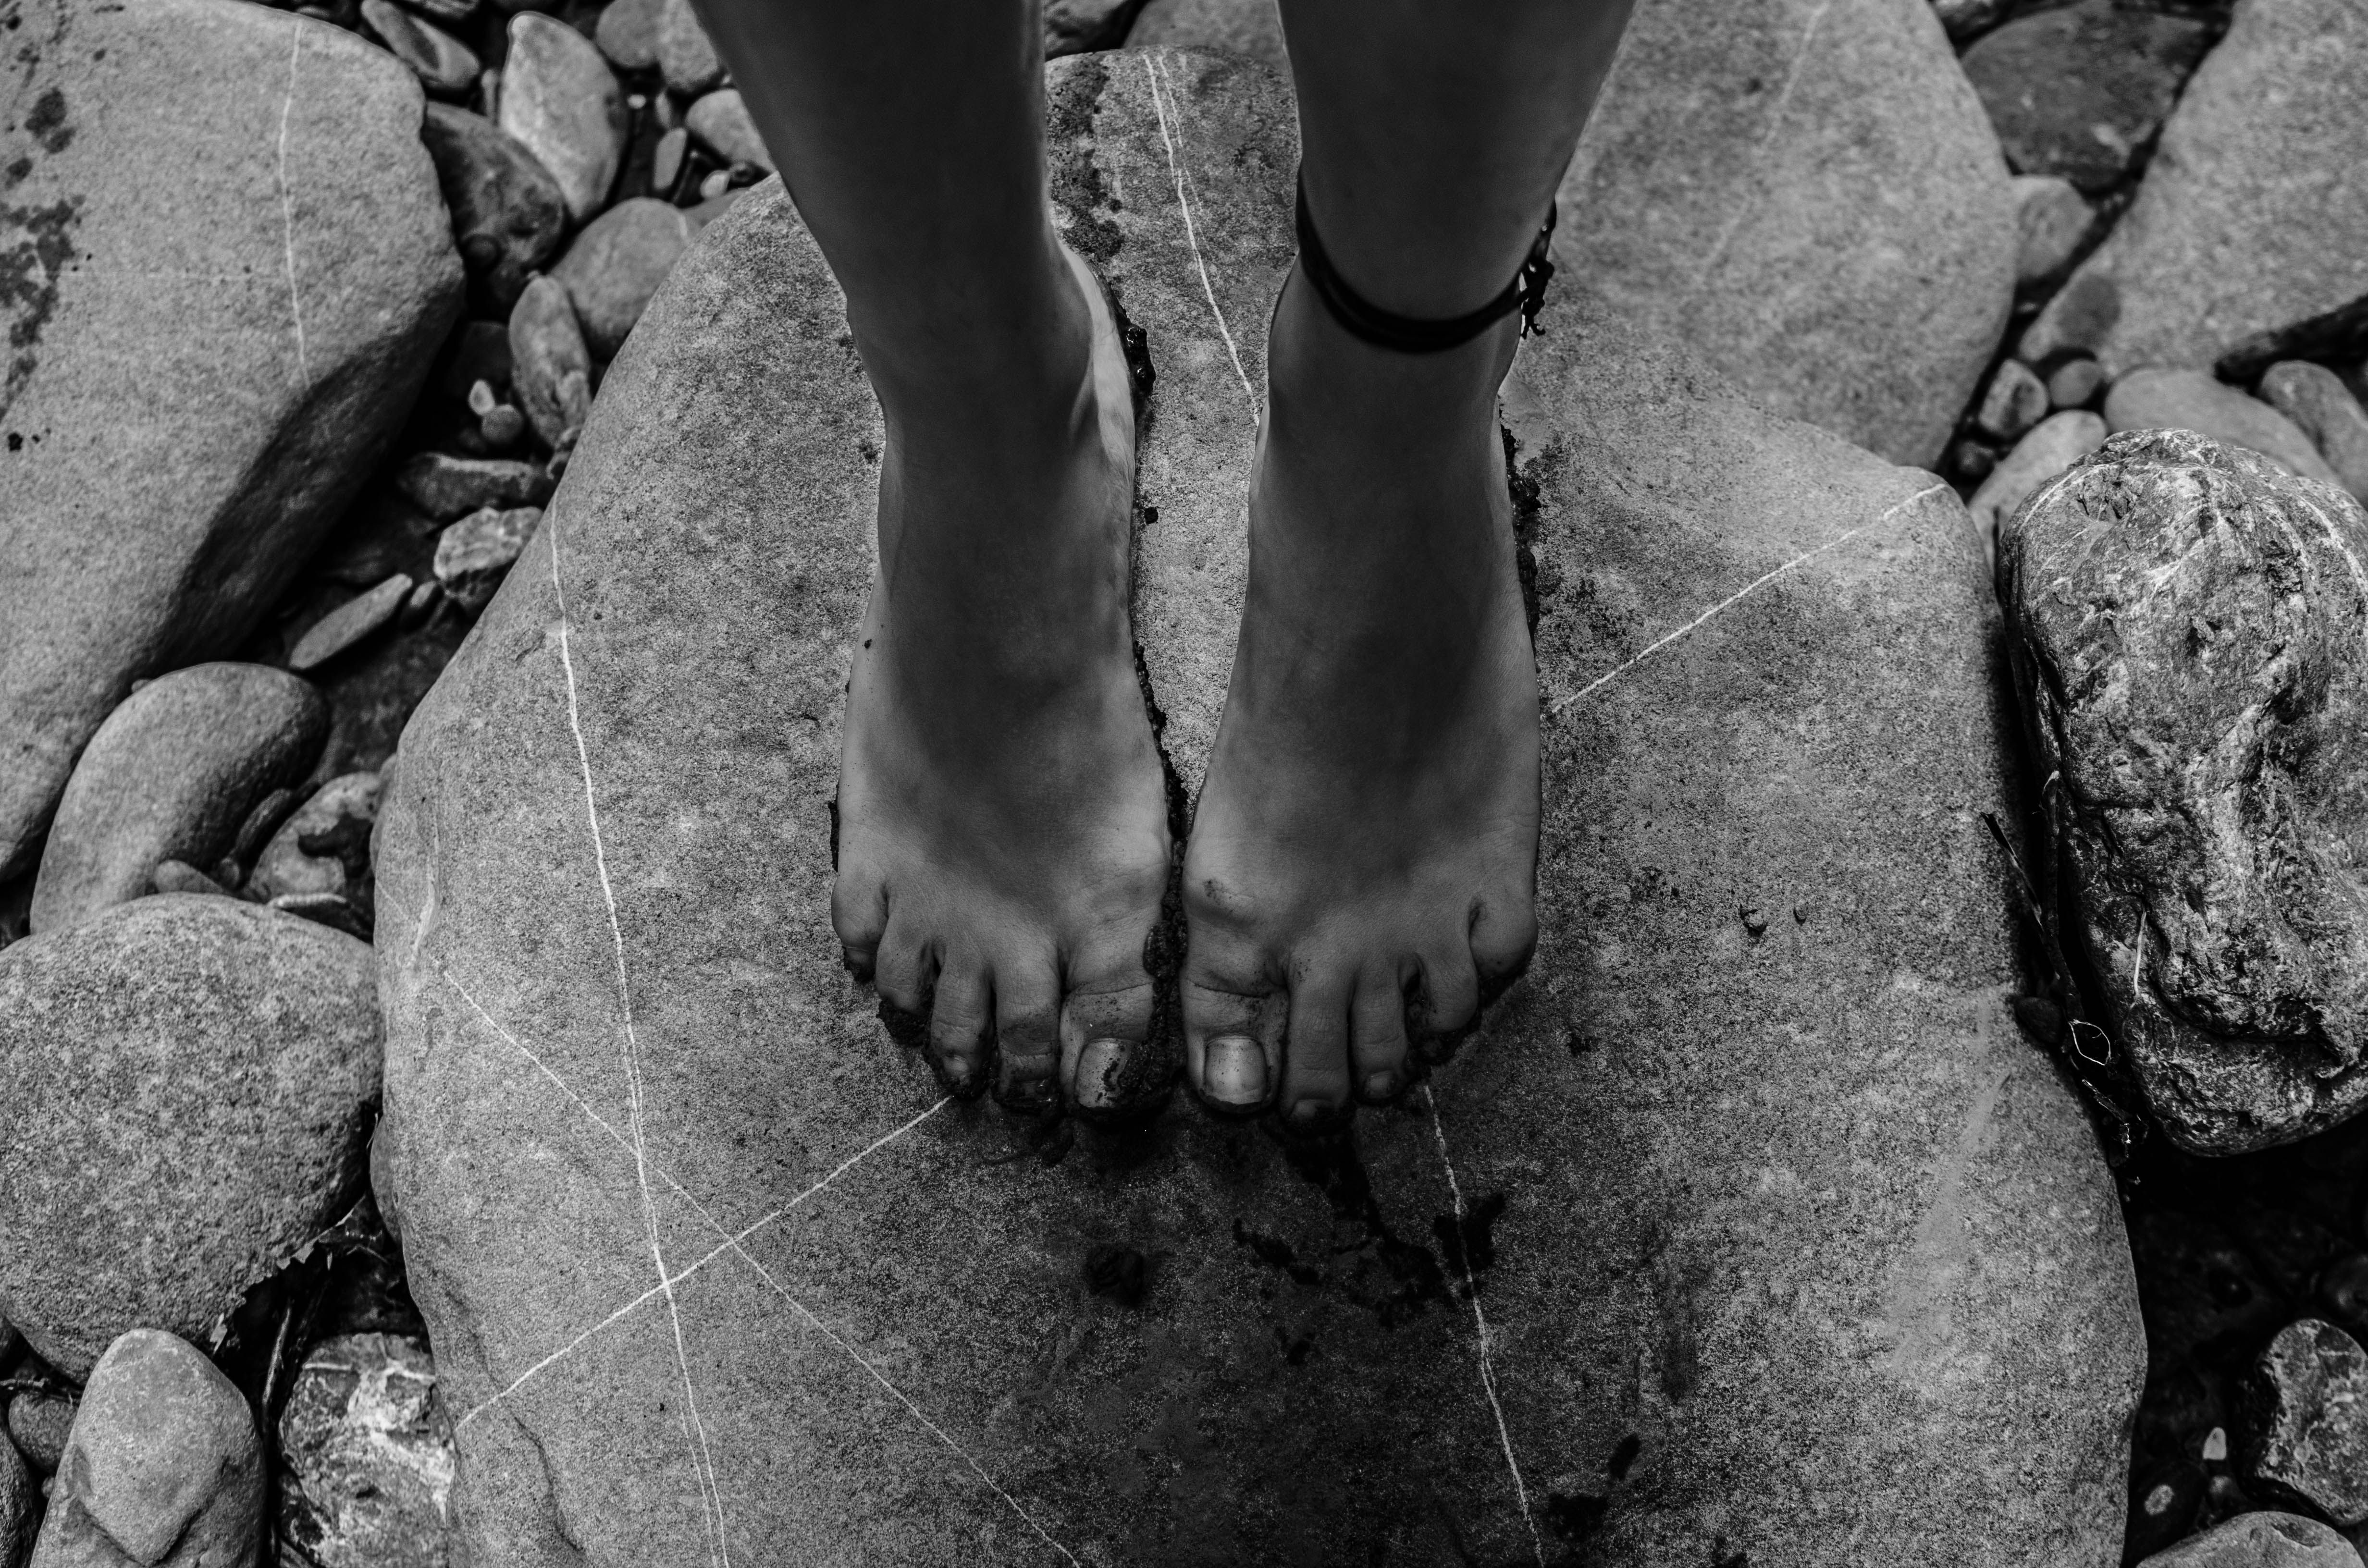 Me and Janneke was walking around the place at Banjat e Benjes in Permet and i just stop her to take a photo of her dirty legs.